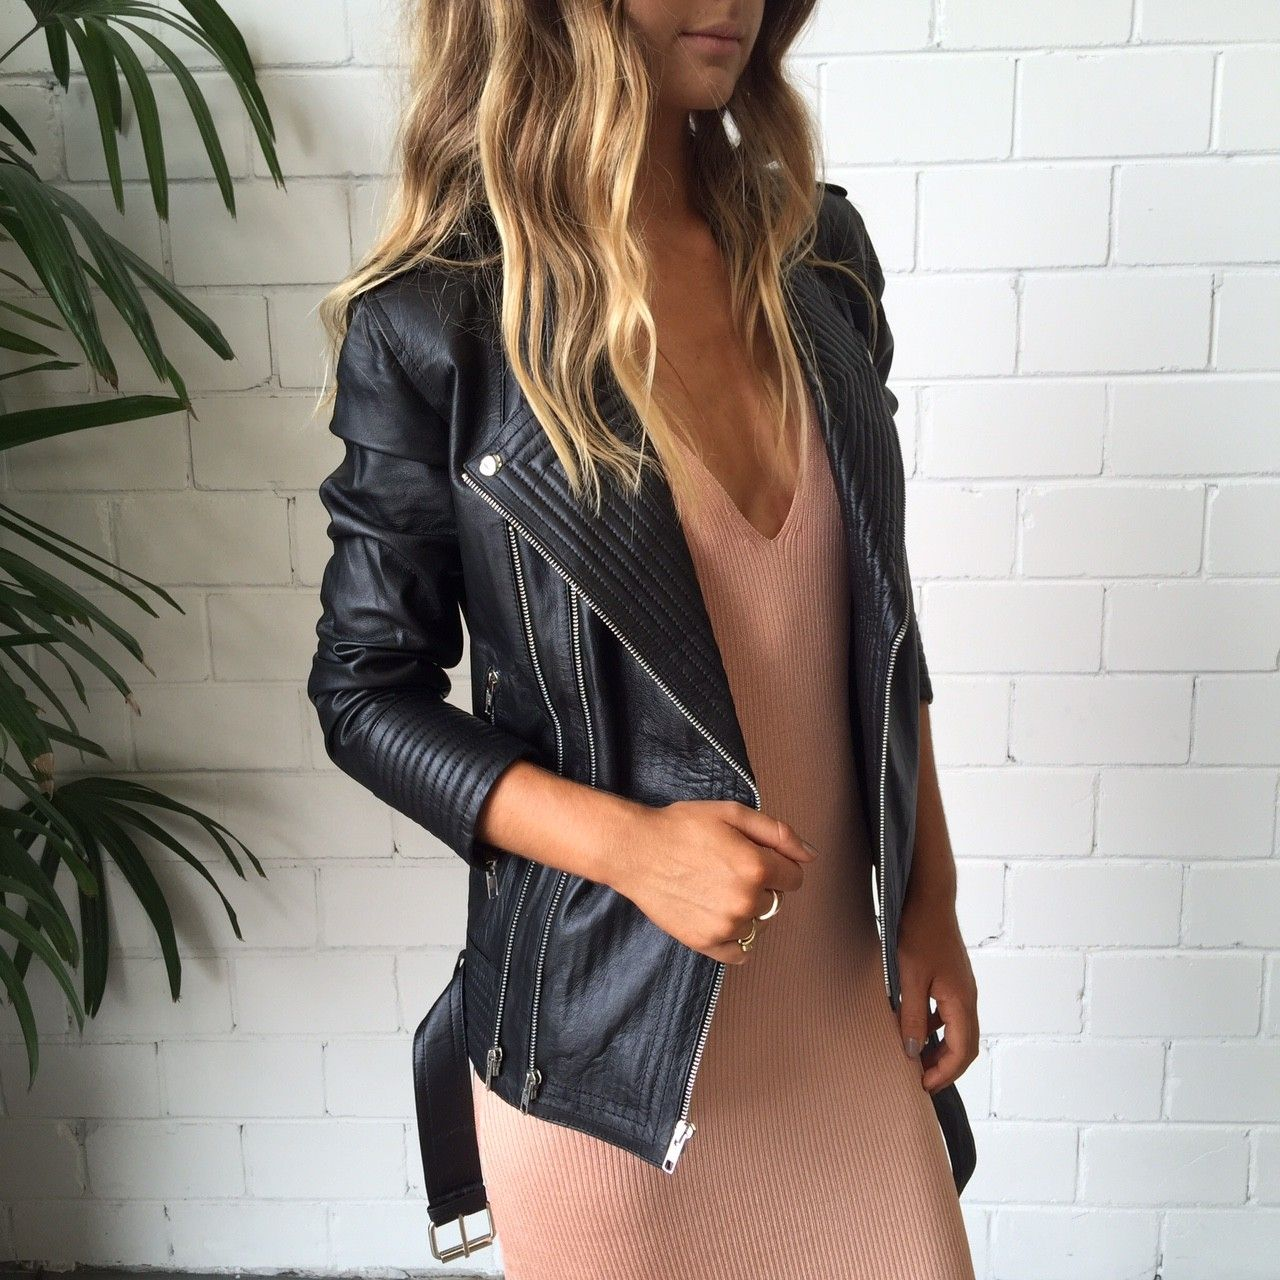 fantastic leather jacket outfit inspo wear